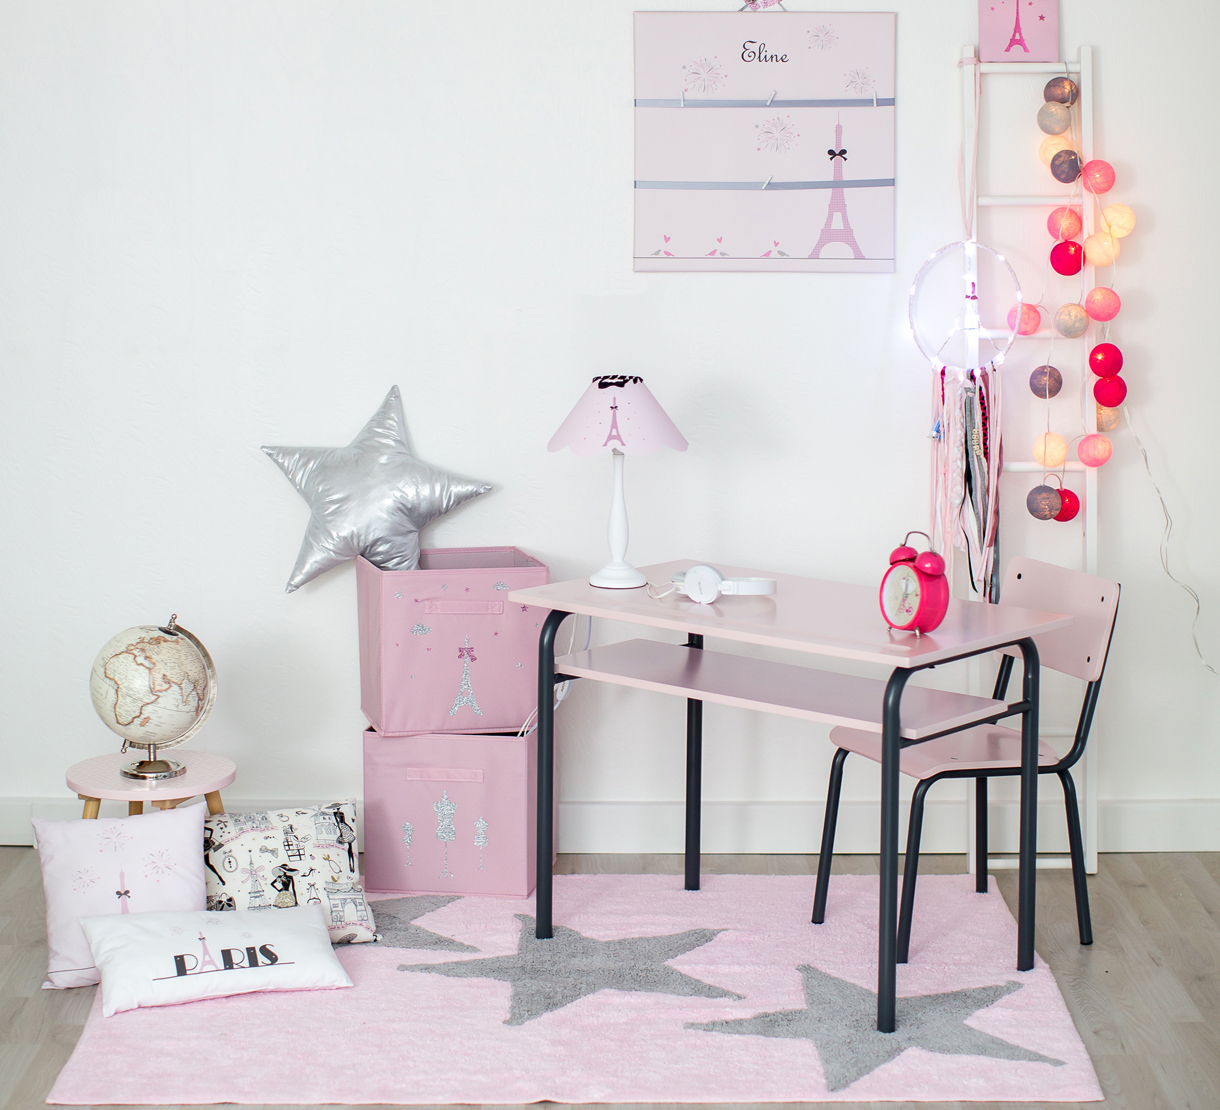 lili pouce sp cialiste de la d coration chambre enfant maison cr ative. Black Bedroom Furniture Sets. Home Design Ideas